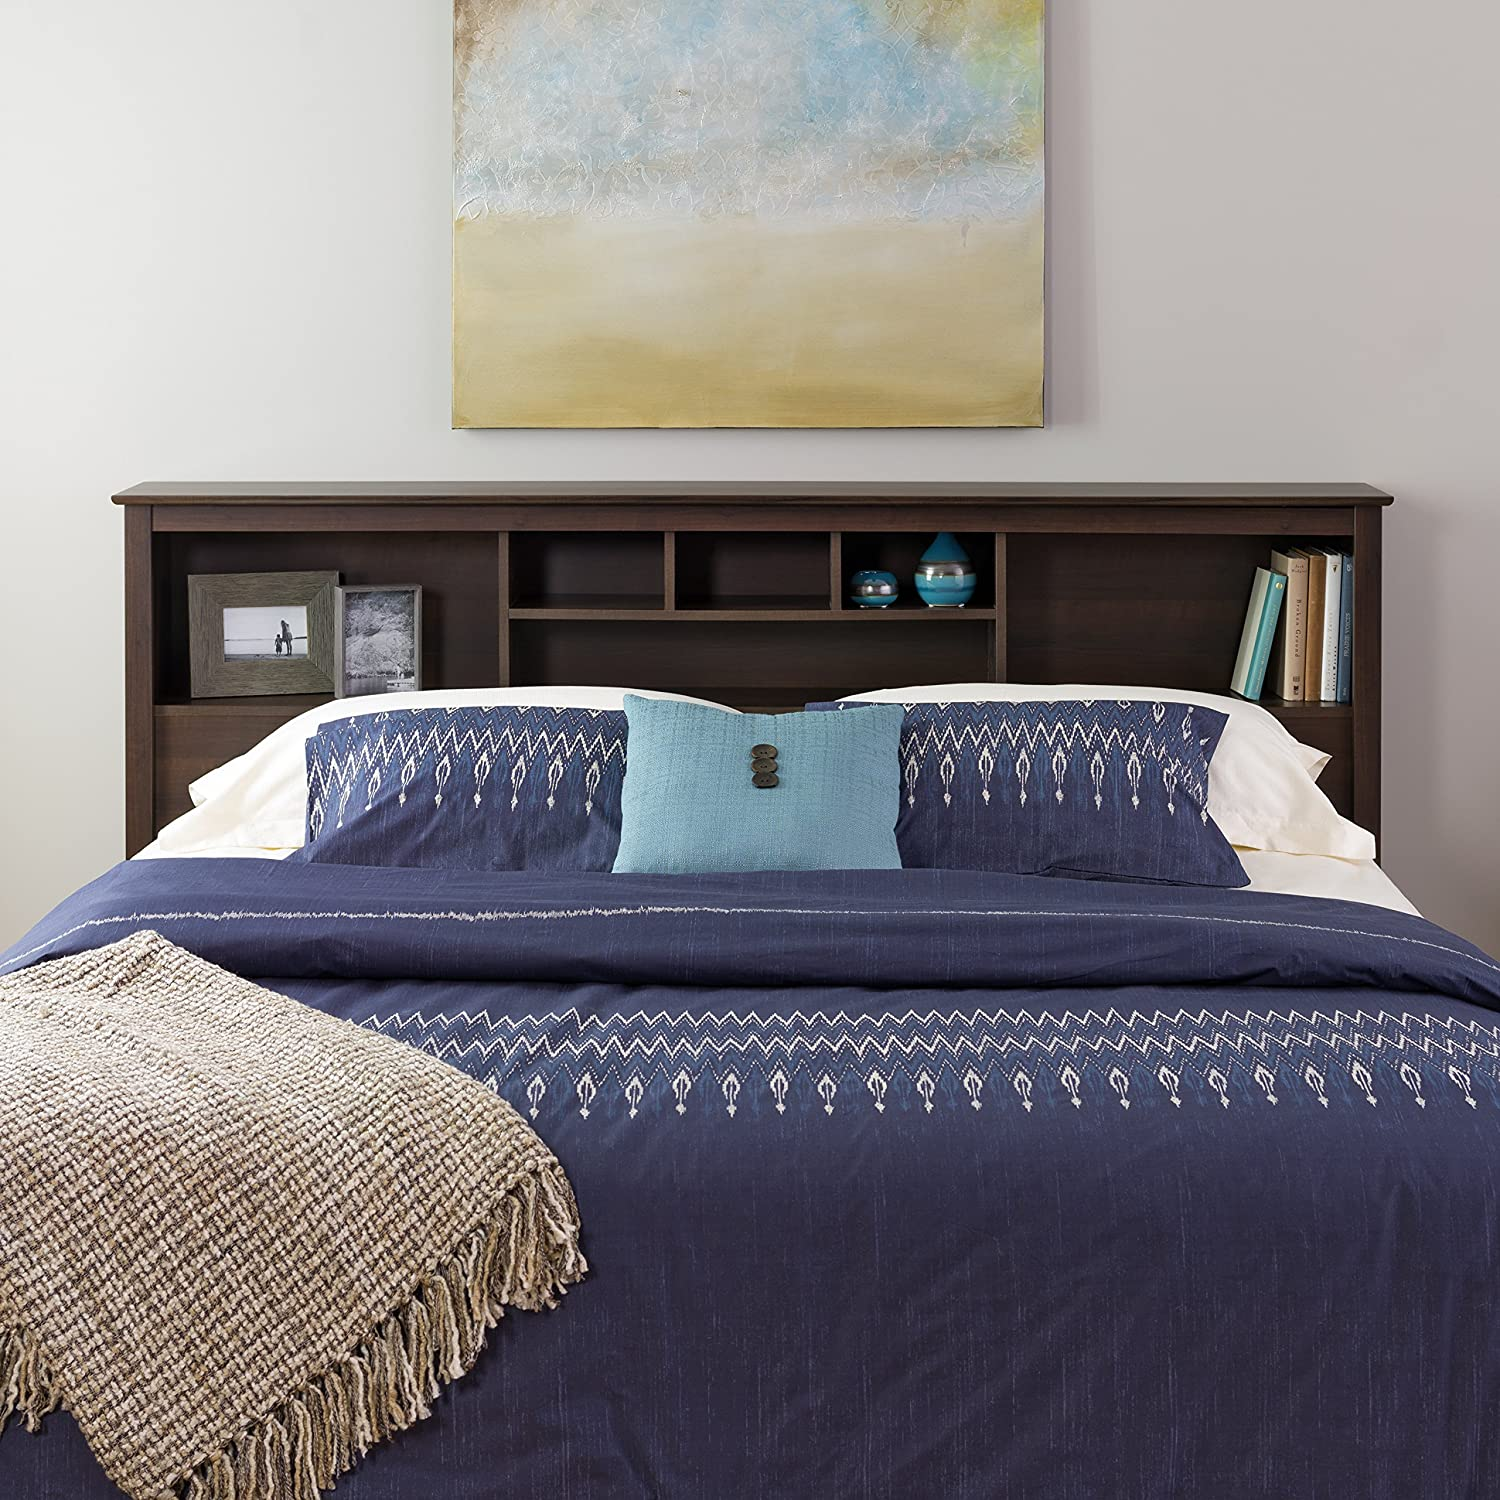 Amazon.com   Prepac King Storage Headboard, Espresso   King Size Headboard